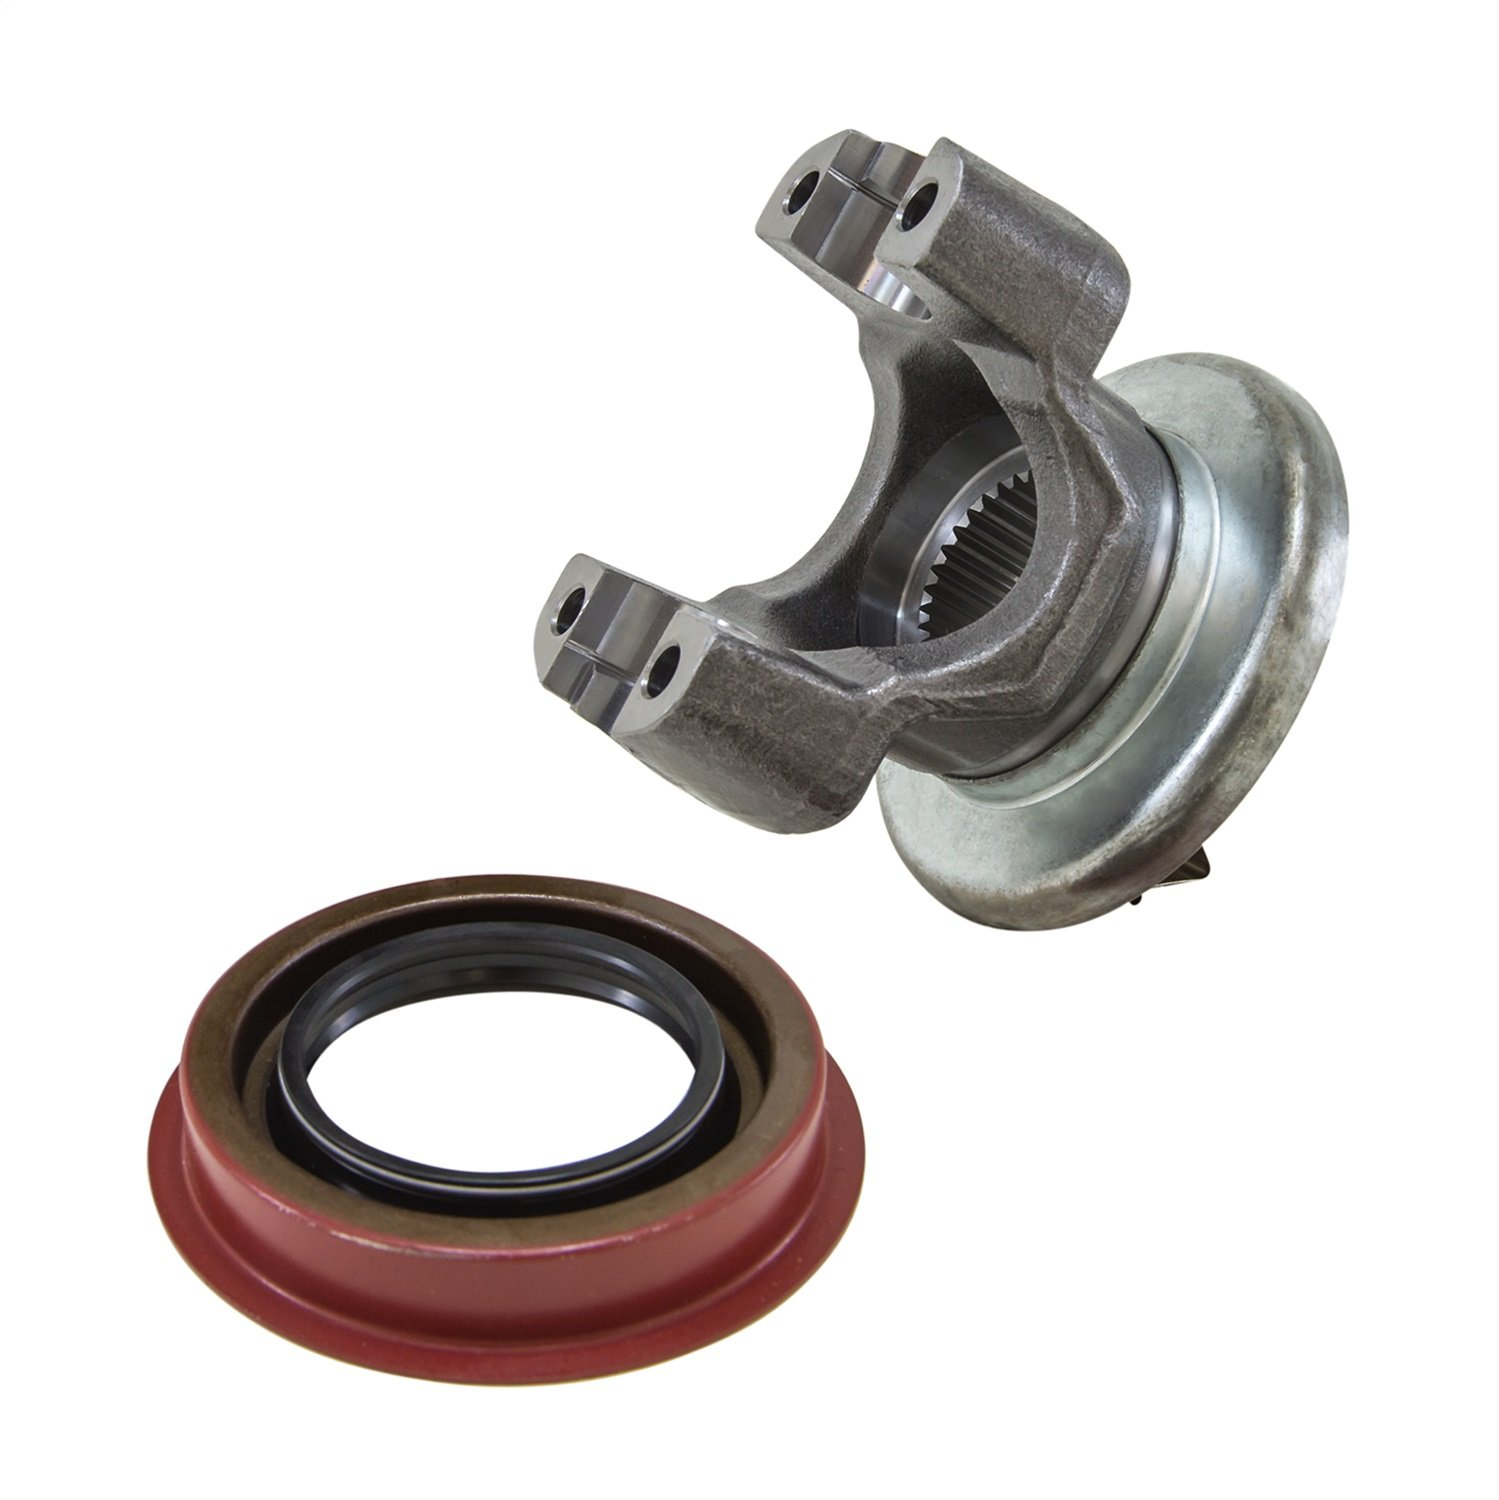 Yukon Gear & Axle (YY GM14T-1350-30S) Yoke for GM 14-Bolt Truck 10.5 Differential by Yukon Gear